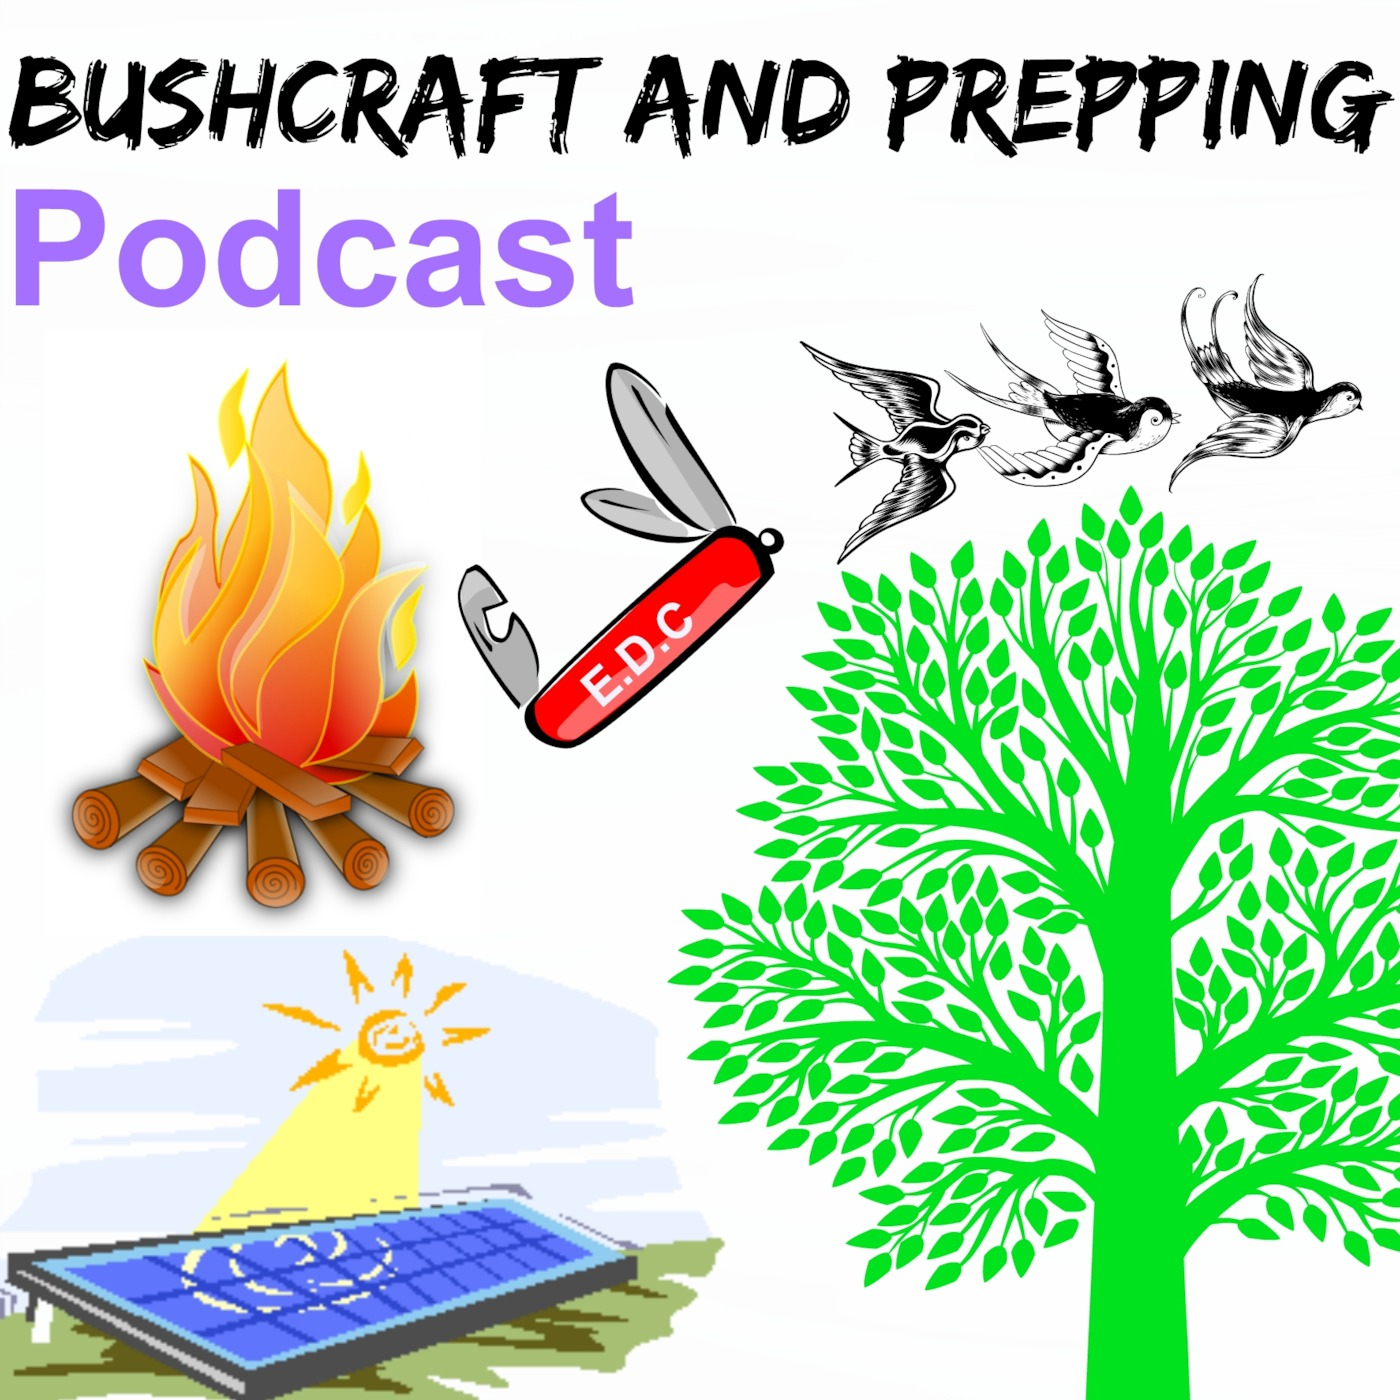 Bushcraft and Prepping Podcast